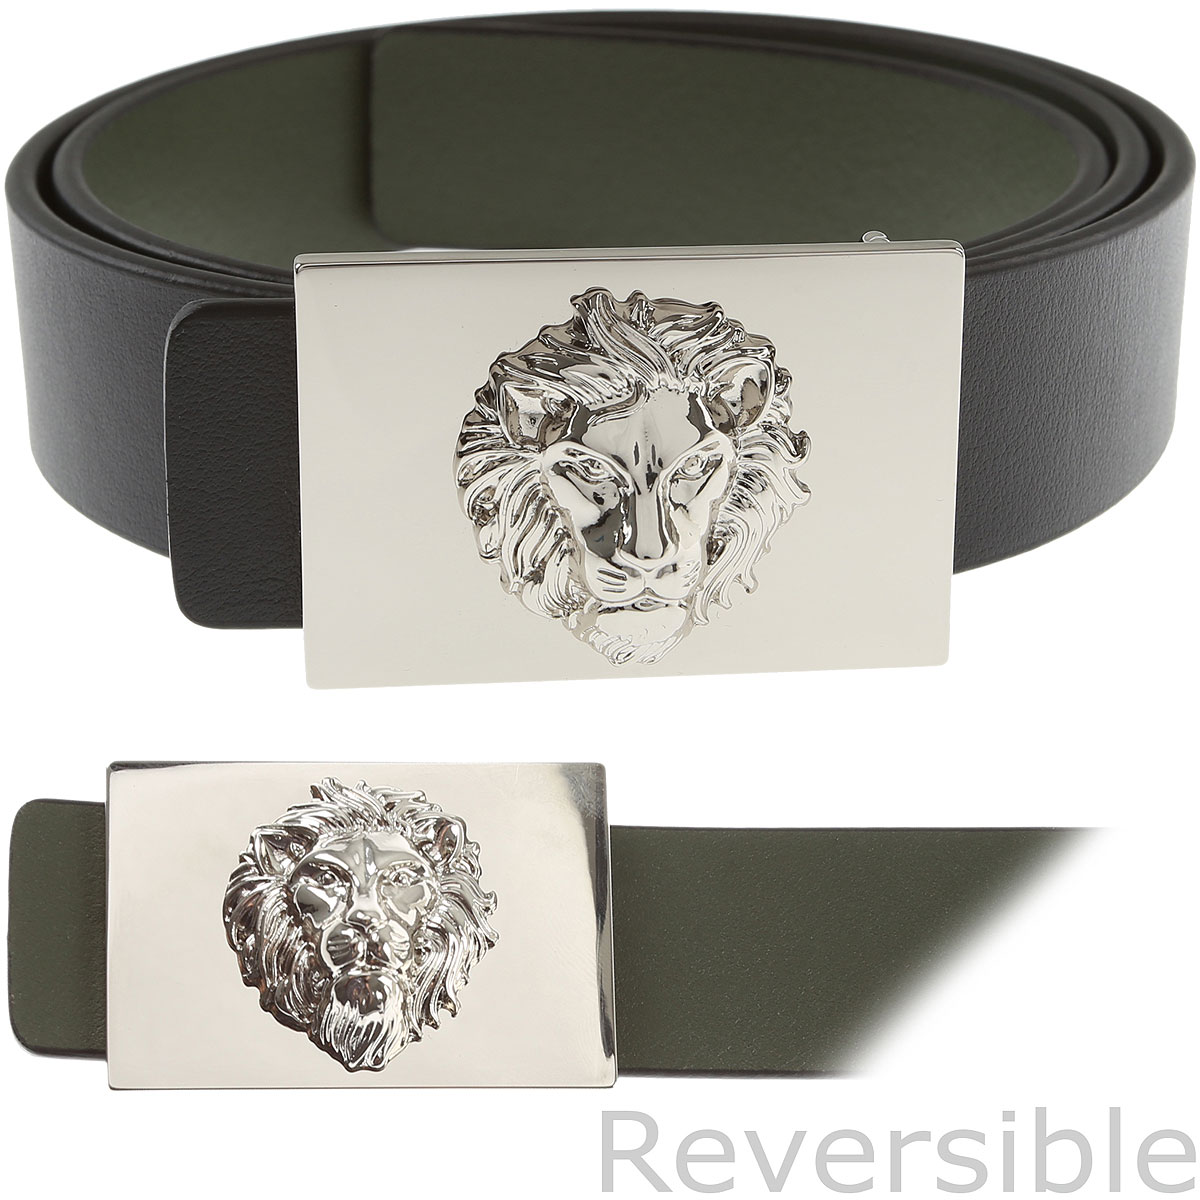 Gianni Versace Mens Belts On Sale, Reversible, Black, Leather, 2019, 34 38